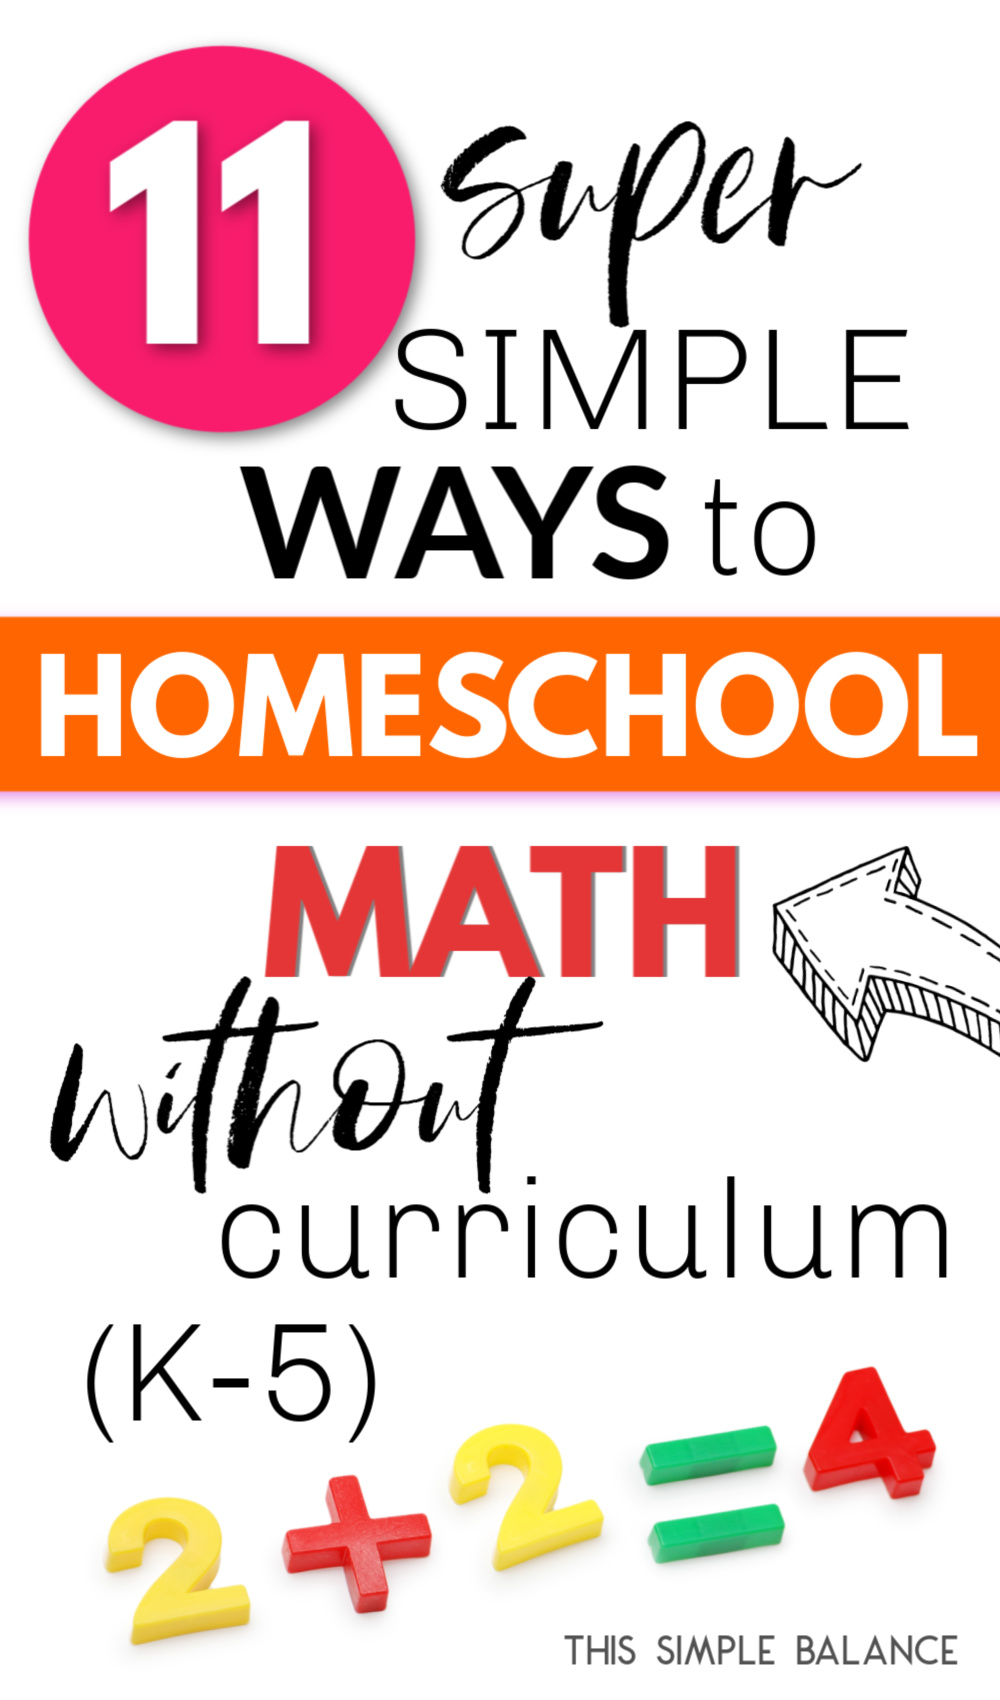 """simple math problem with text overlay """"11 super simple ways to homeschool math without curriculum"""""""